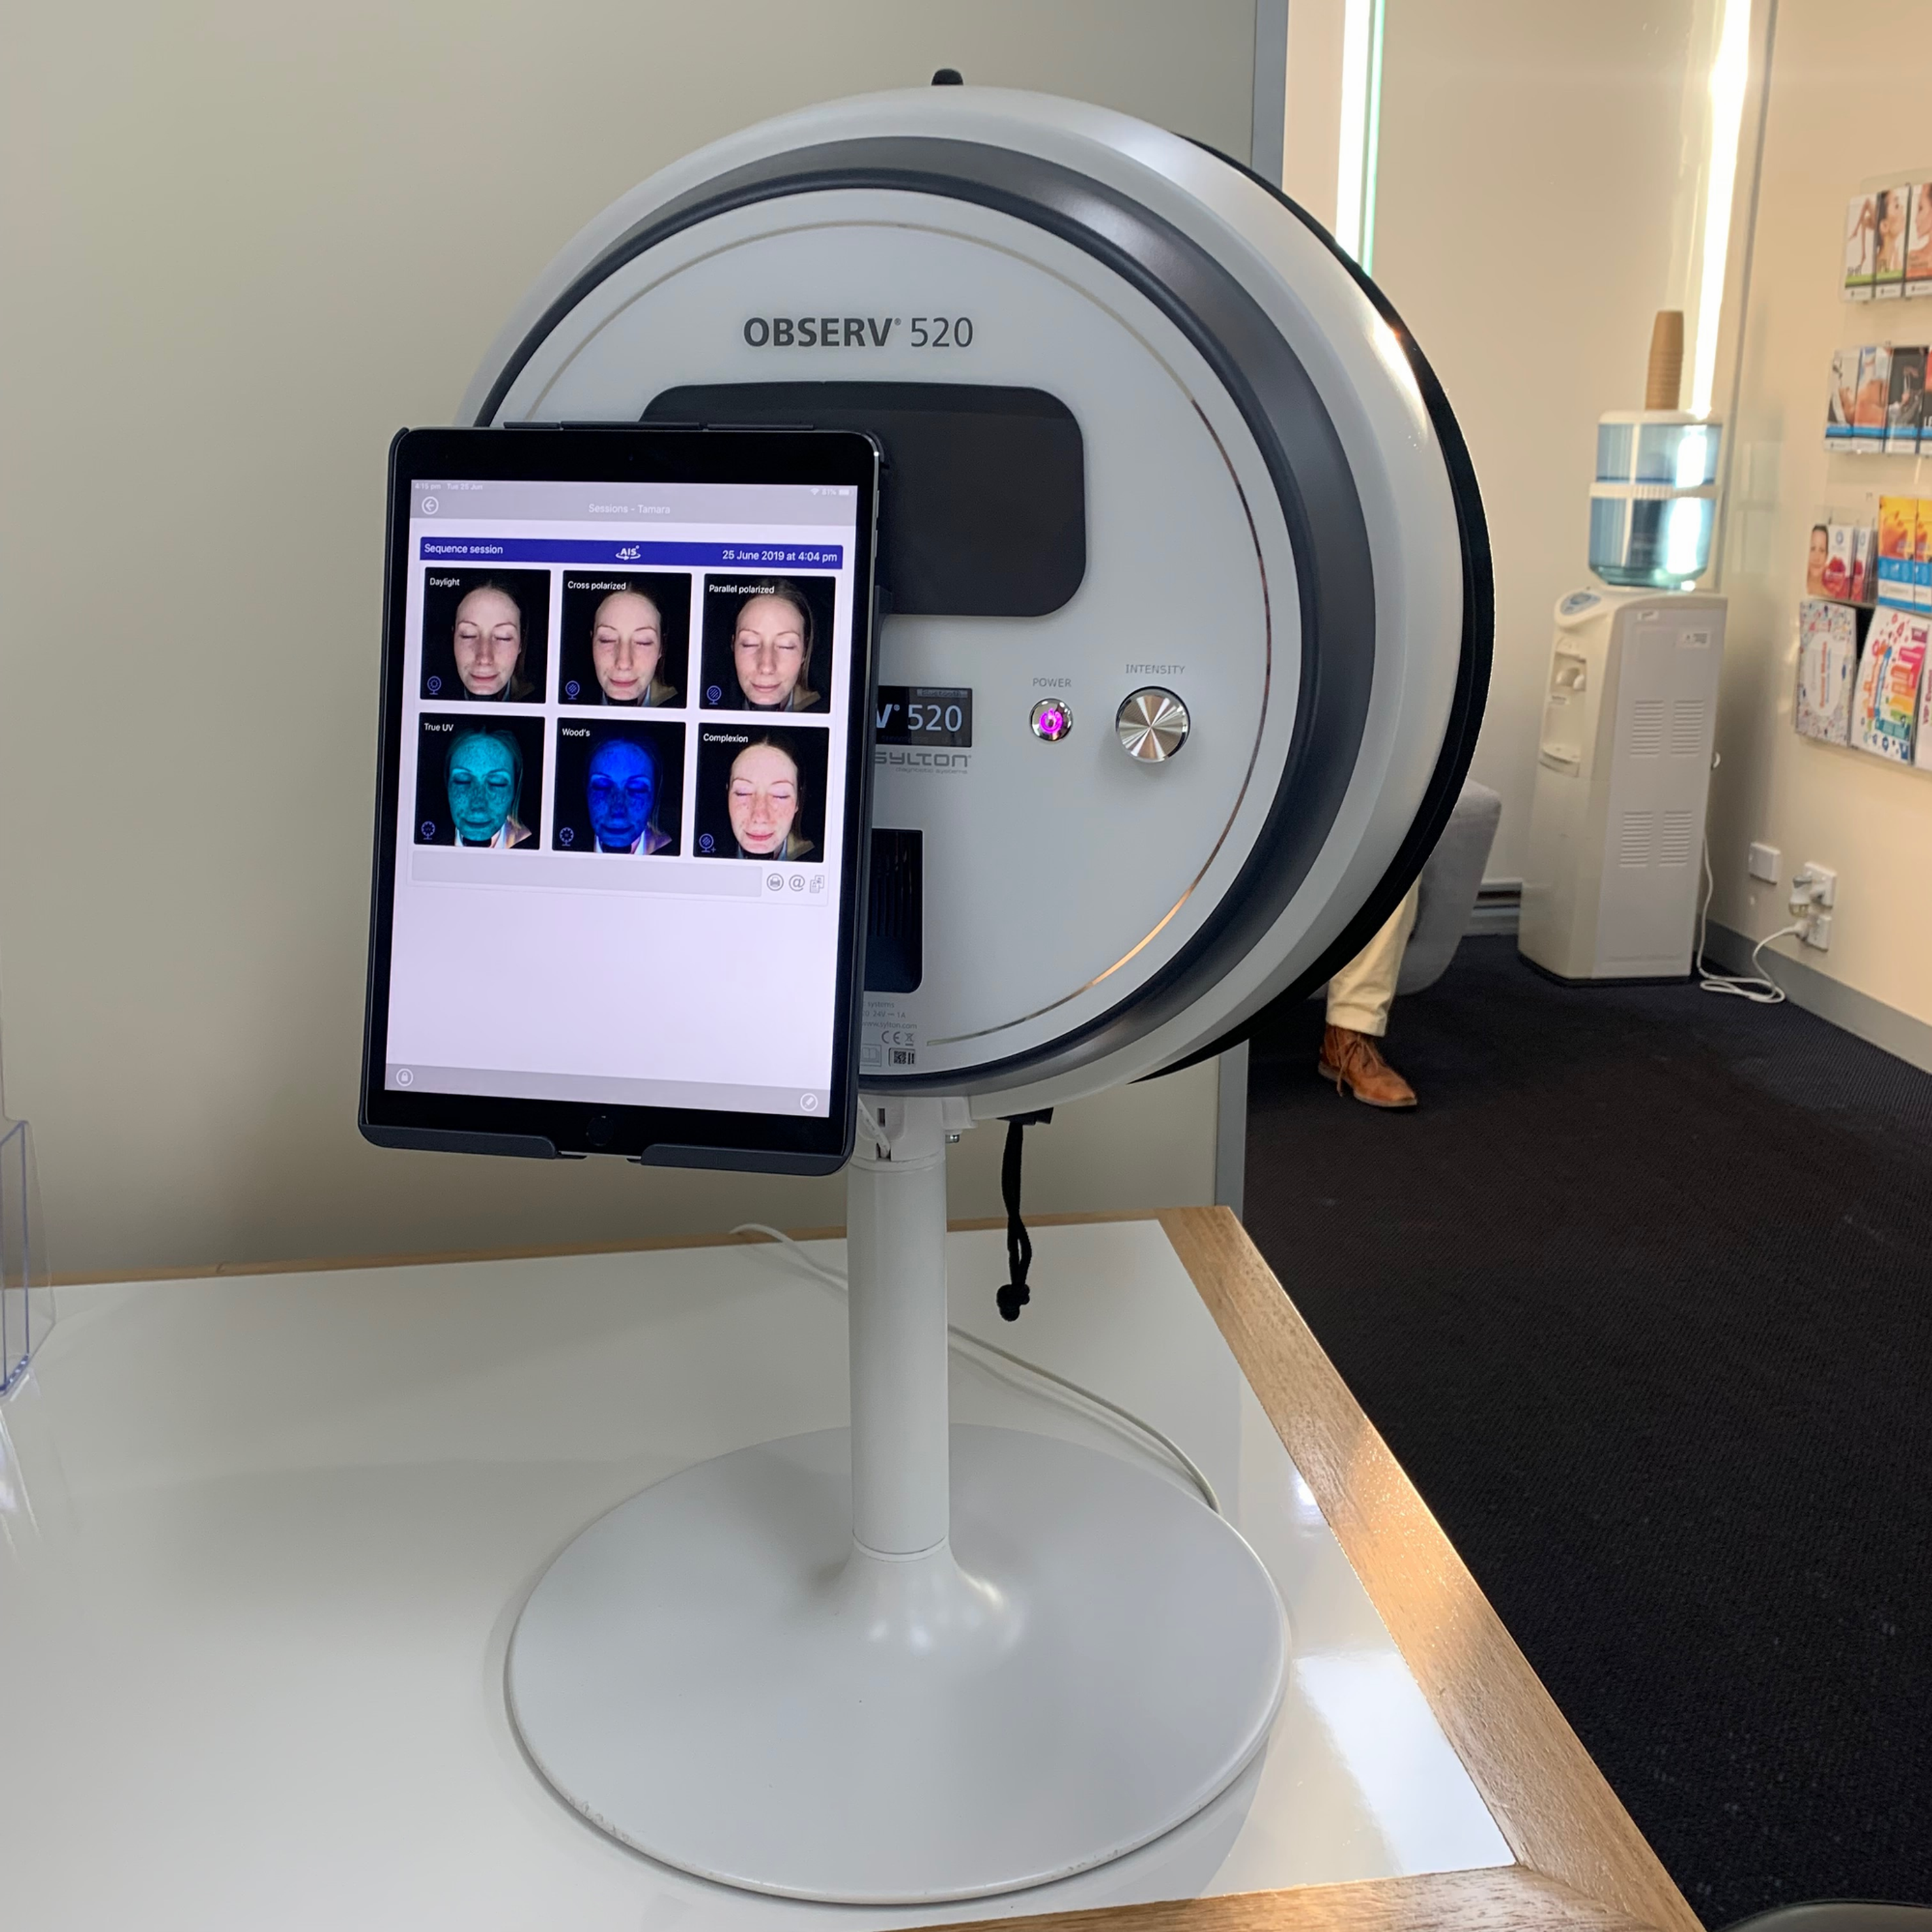 2019: The year of technology – Enhanced skin analysis